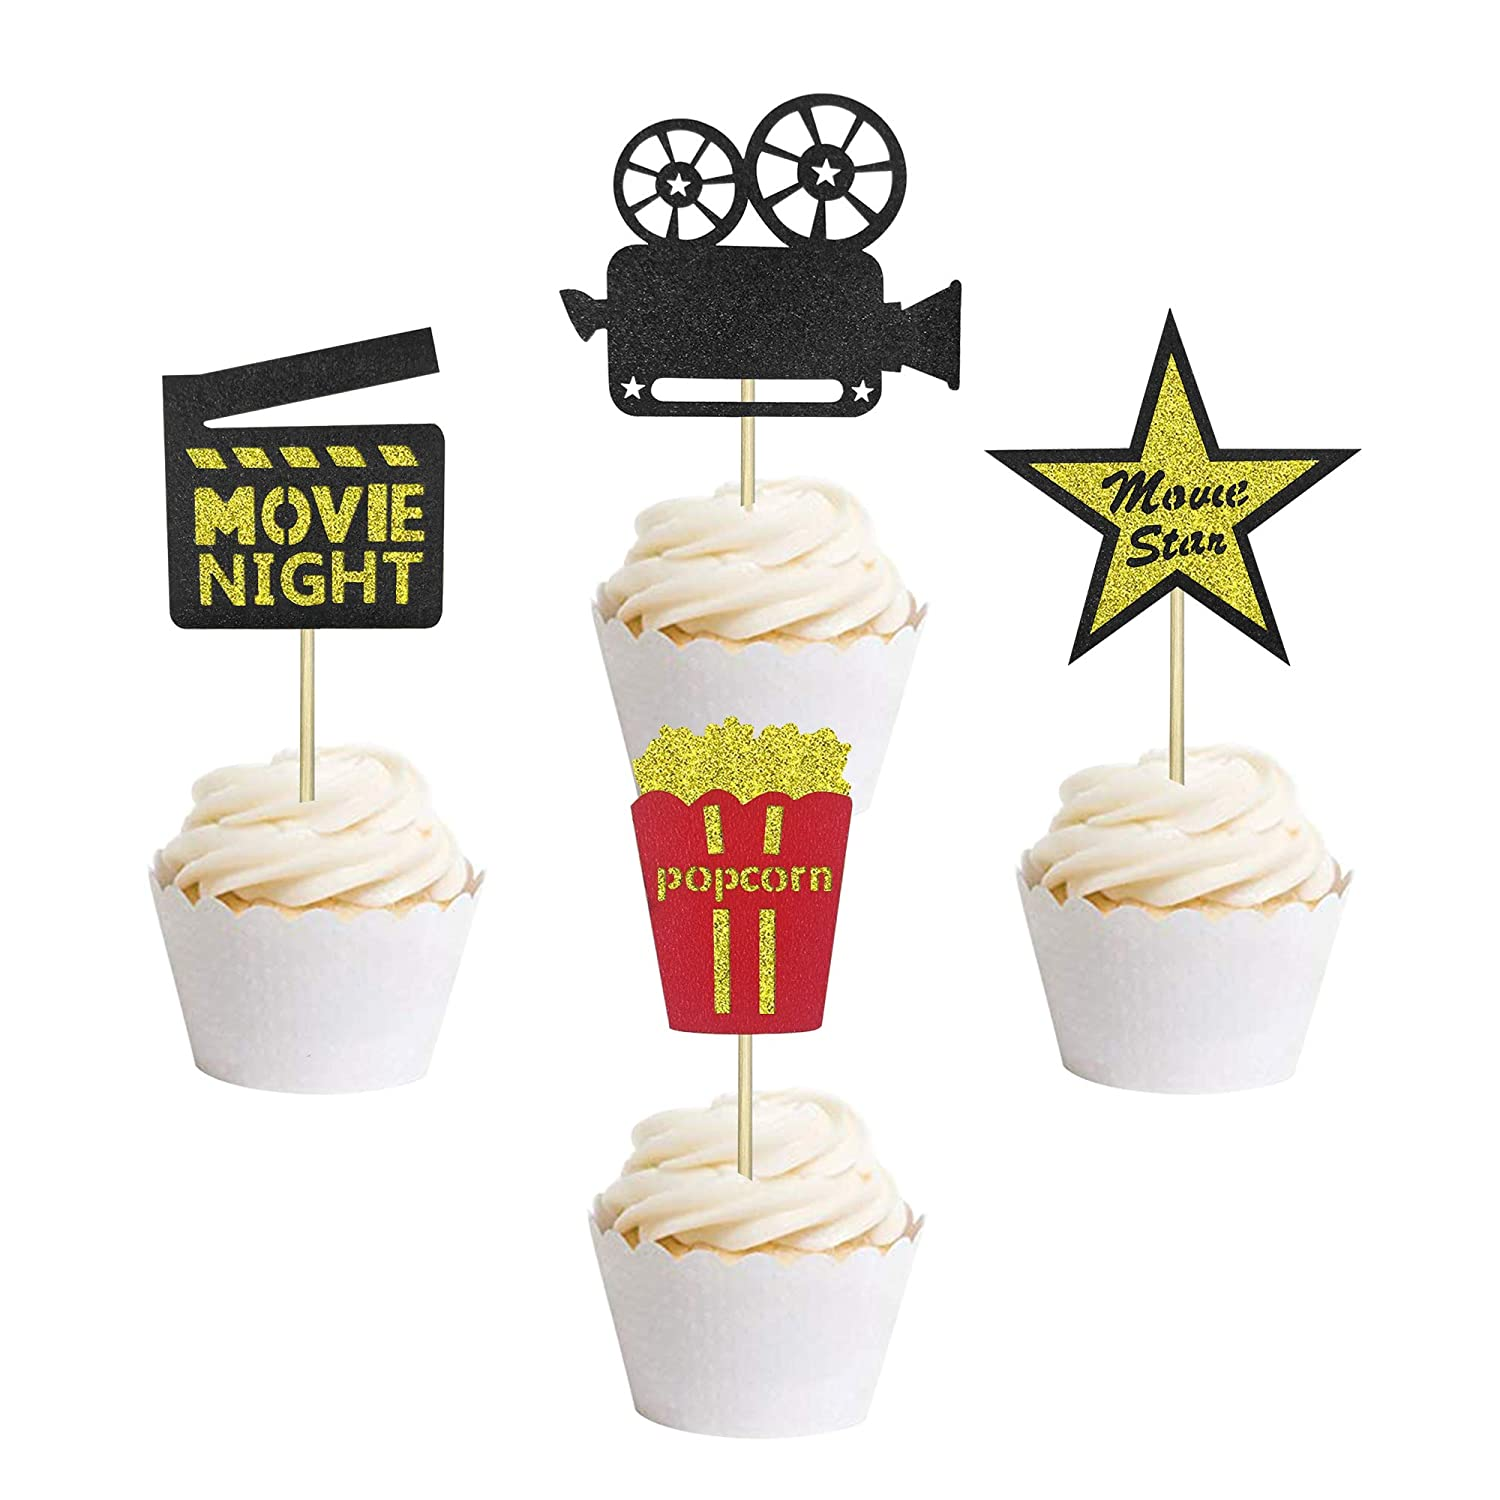 24 Pcs Hollywood Movie Theater Themed Cupcake Toppers Movie Night Party Clear Treat Picks Amazon Com Grocery Gourmet Food